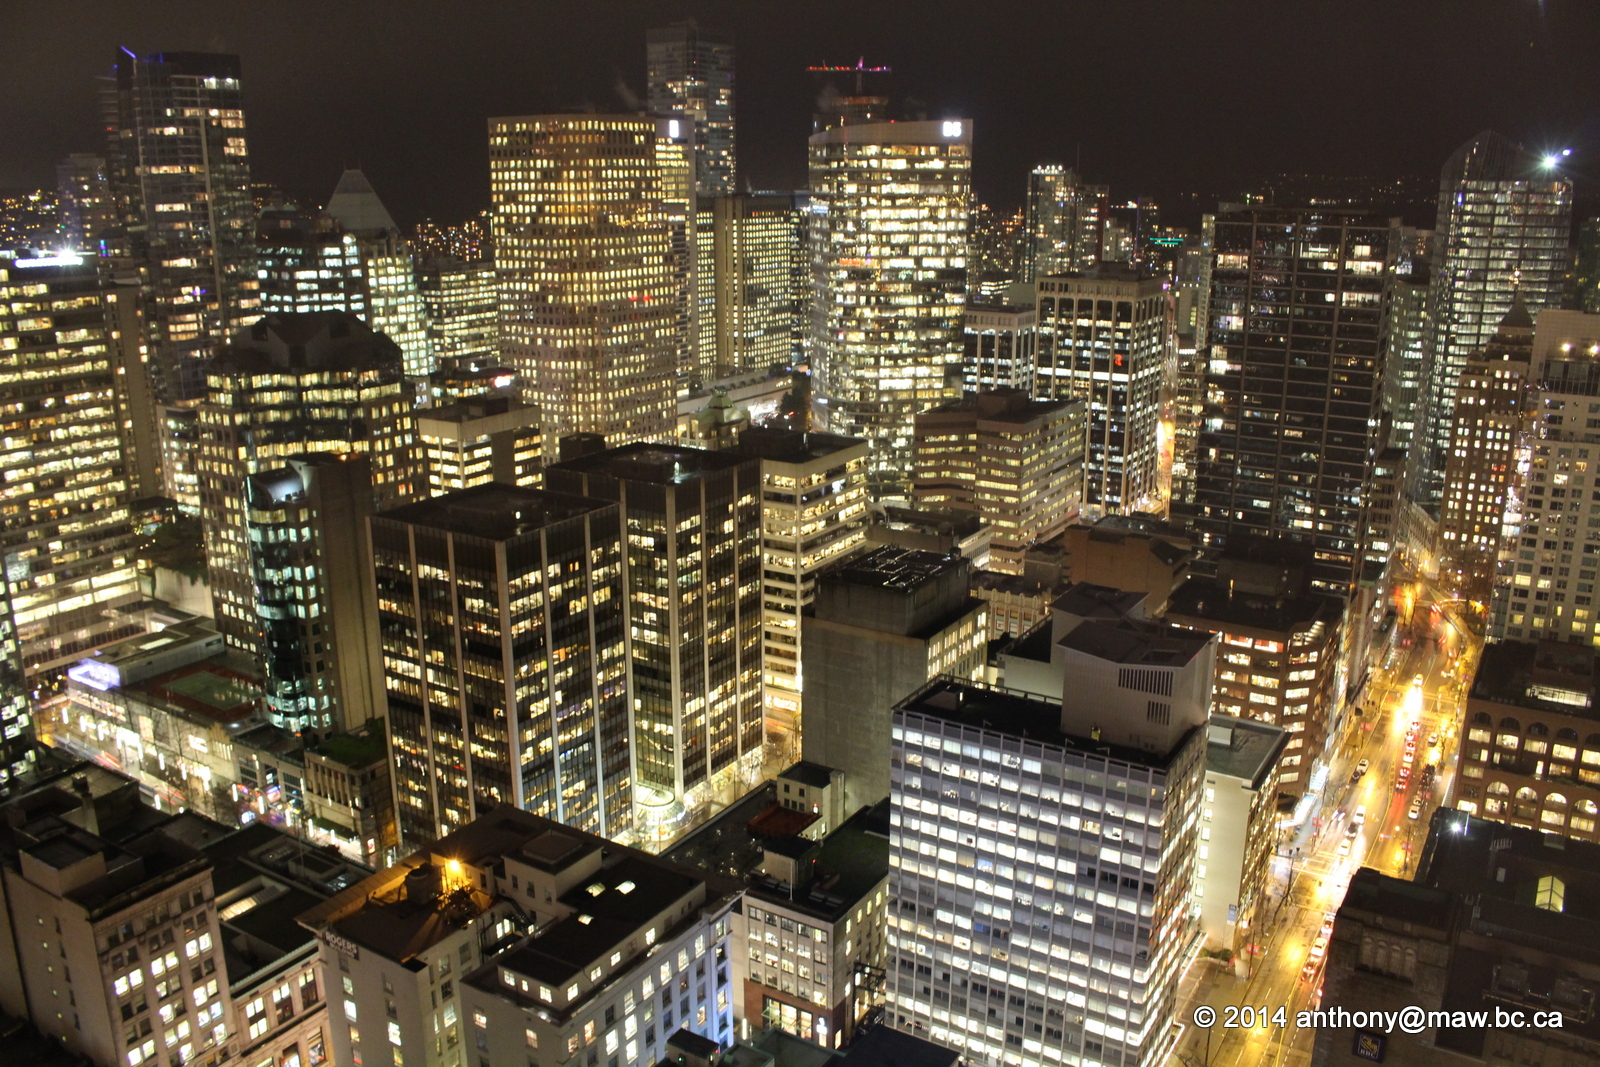 IMG_8249 2014-12-04 Vancouver Night Harbour Centre Lookout. autumn, canada, rain, weather, night, vancouver, lookout, westcoast, harbourcentre. buy photo